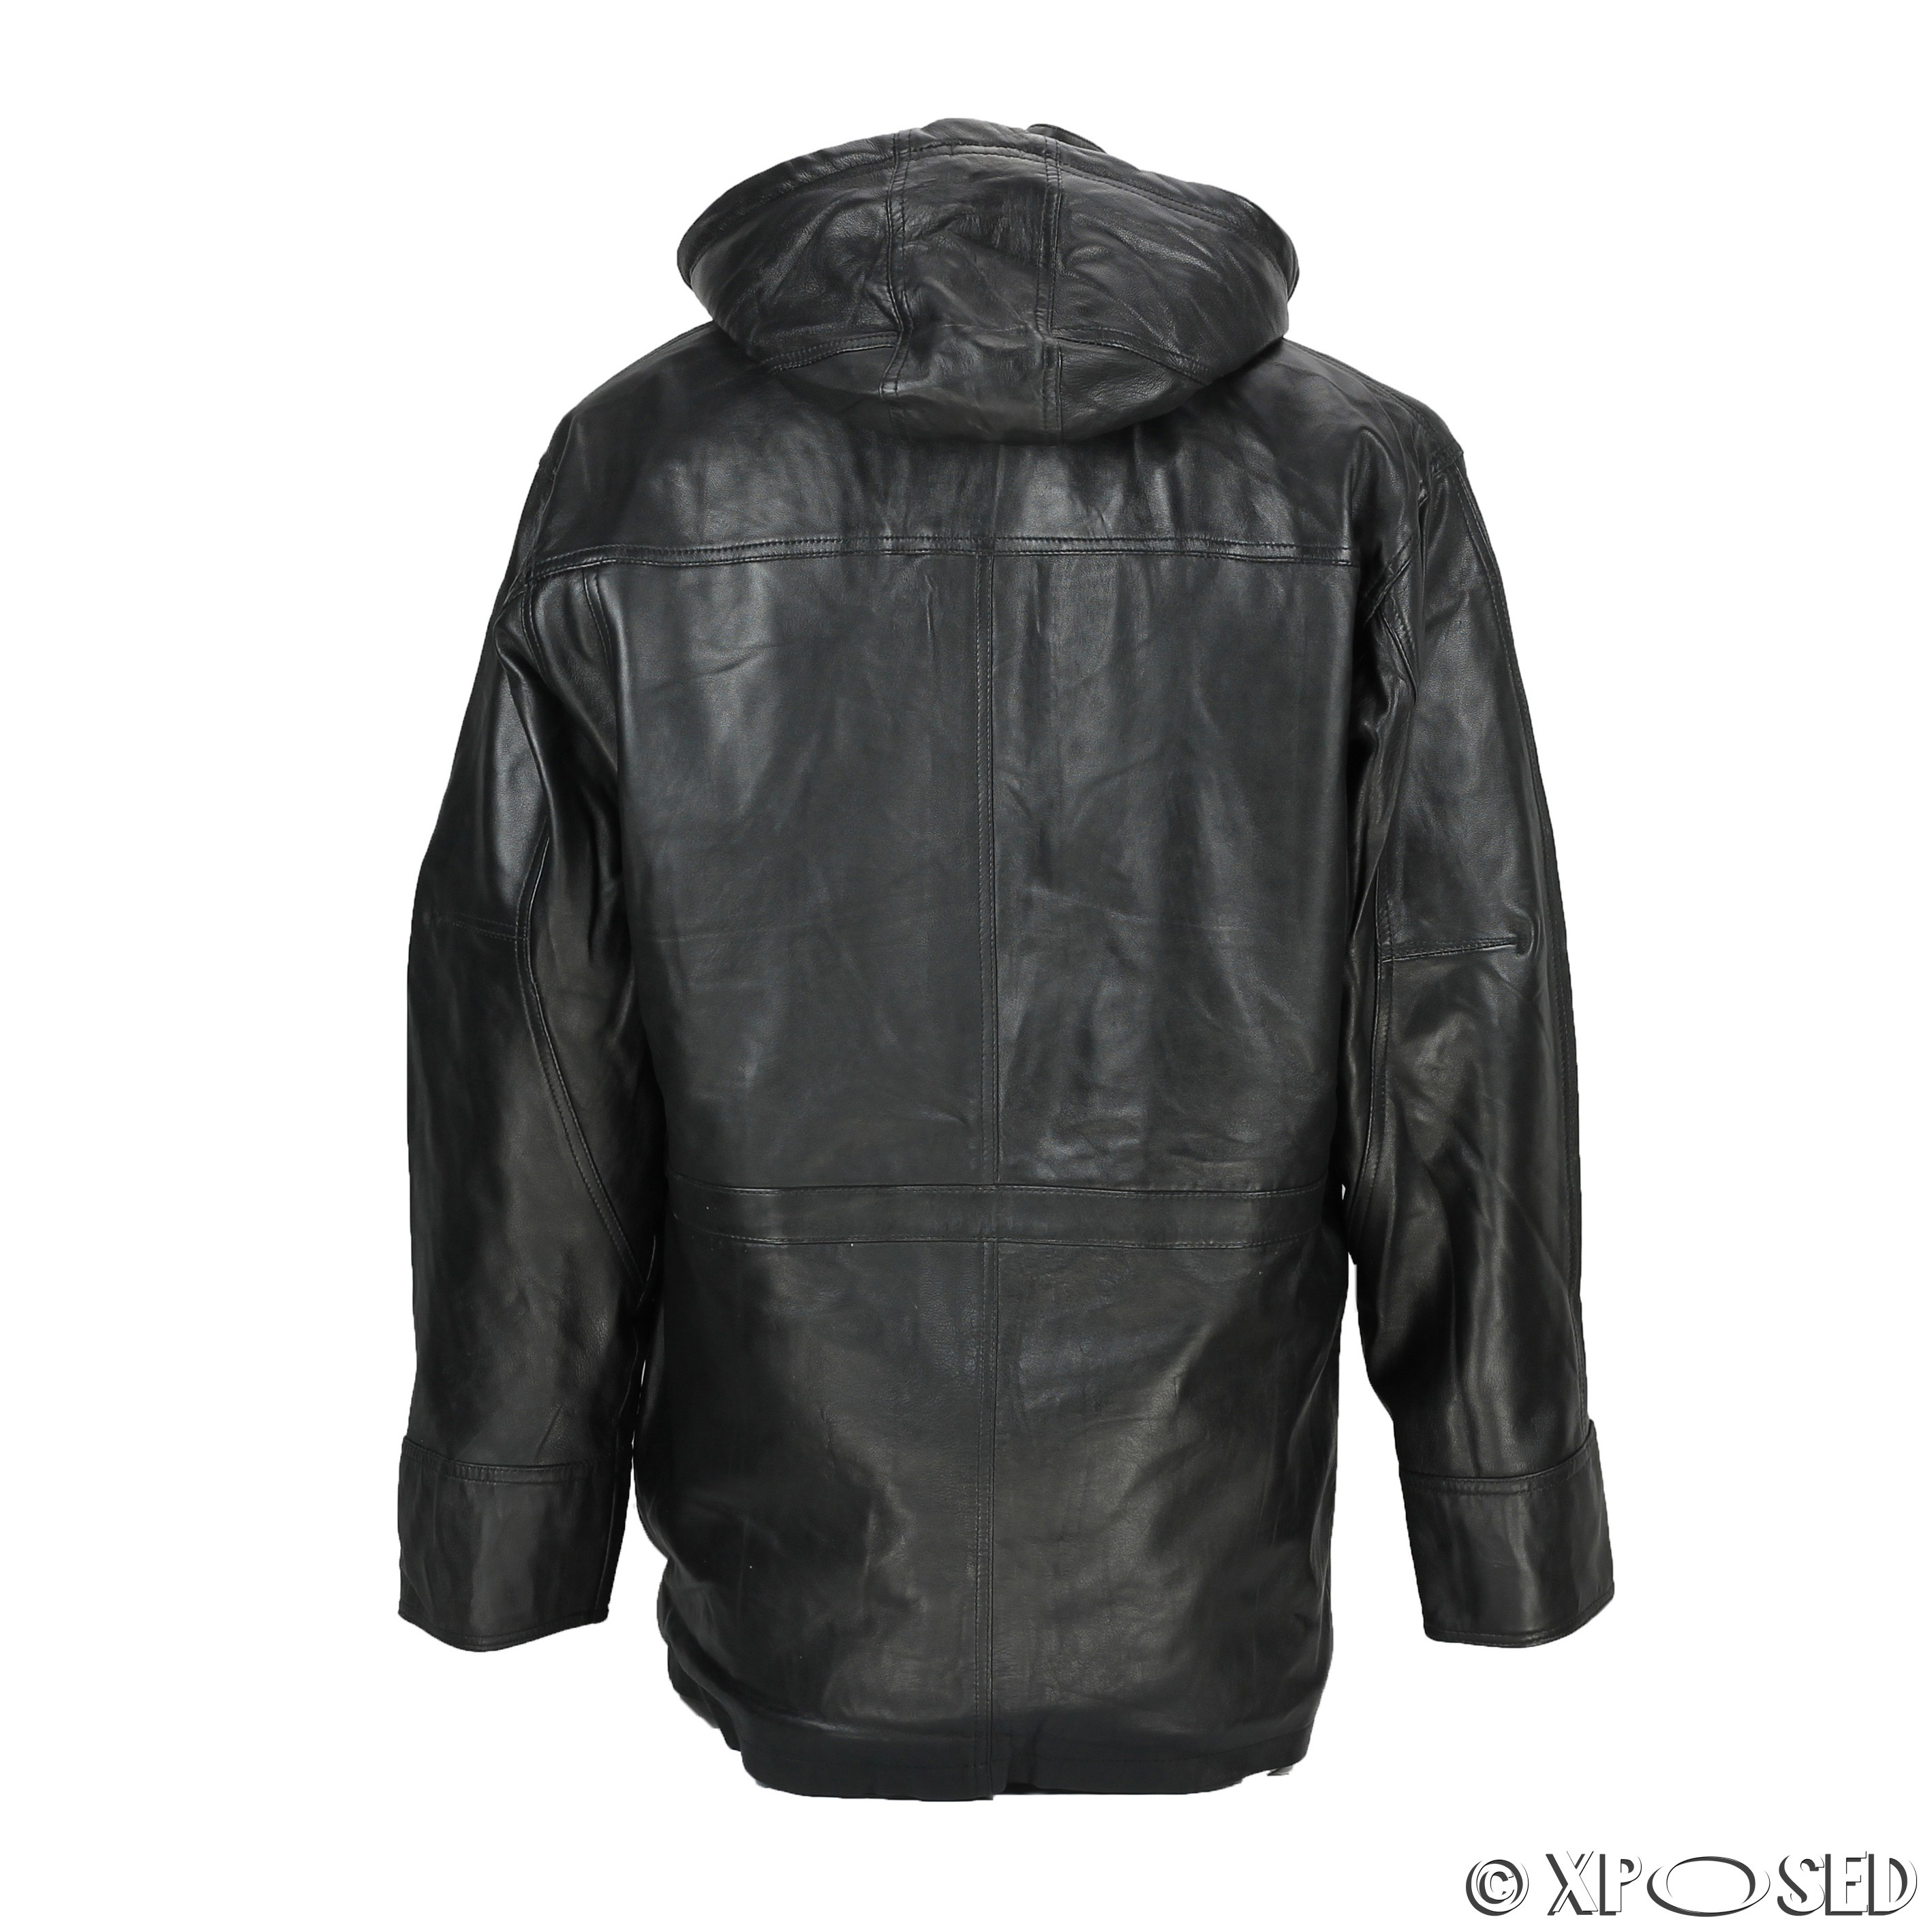 How Big Is A Jacket That Is Kids Sizes